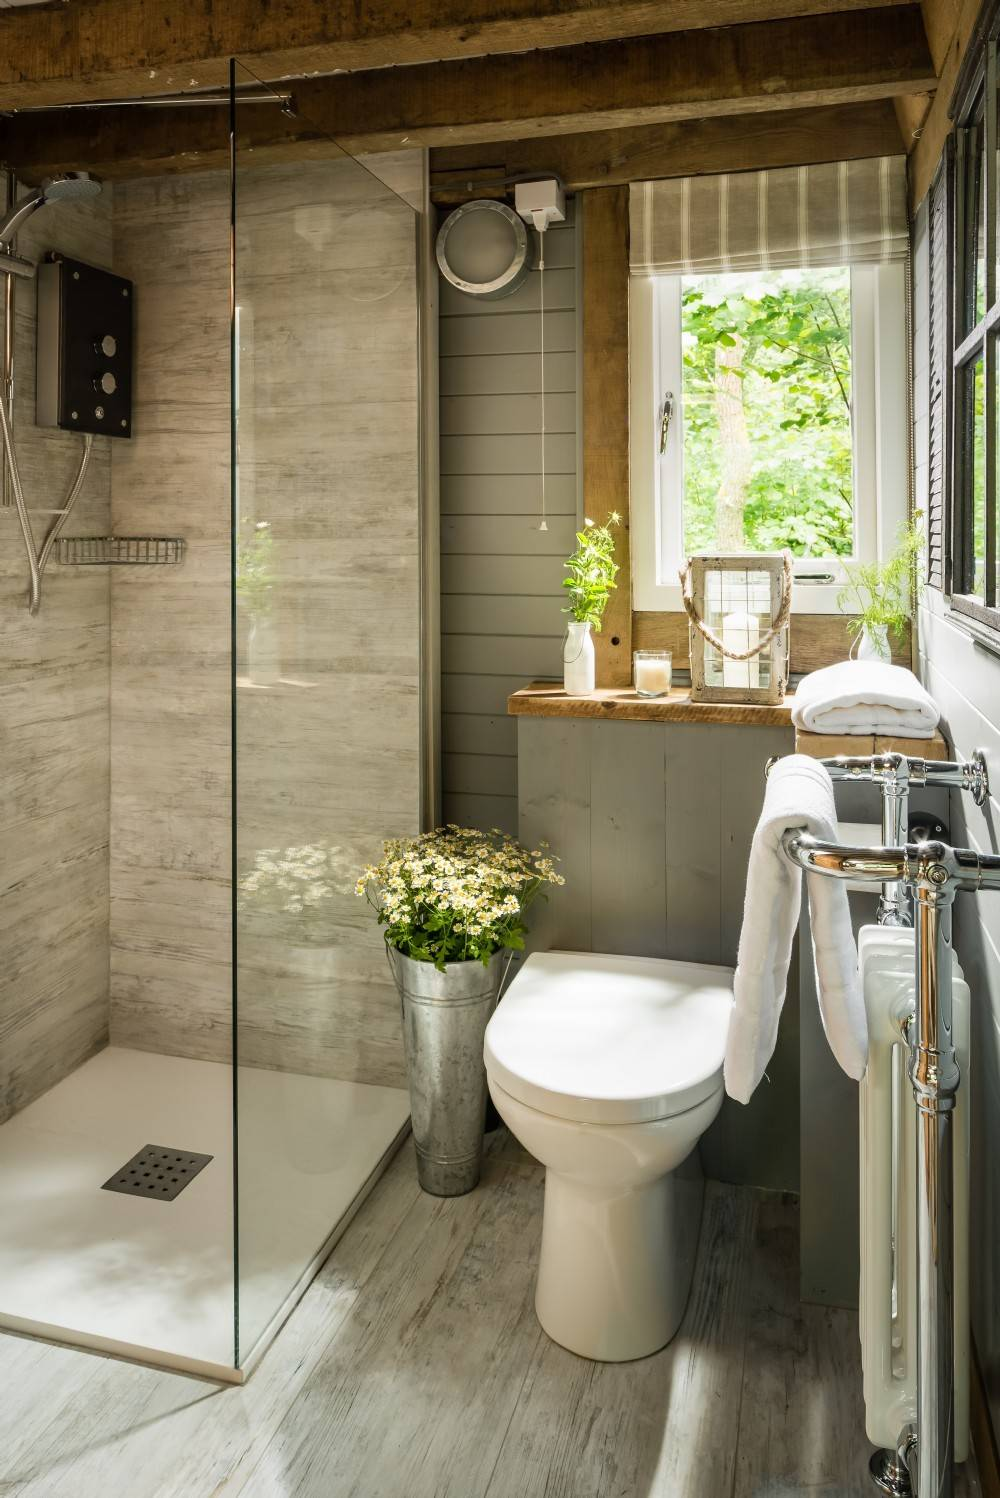 Small Rustic Bathroom Pictures Ideas, Small Rustic Bathrooms